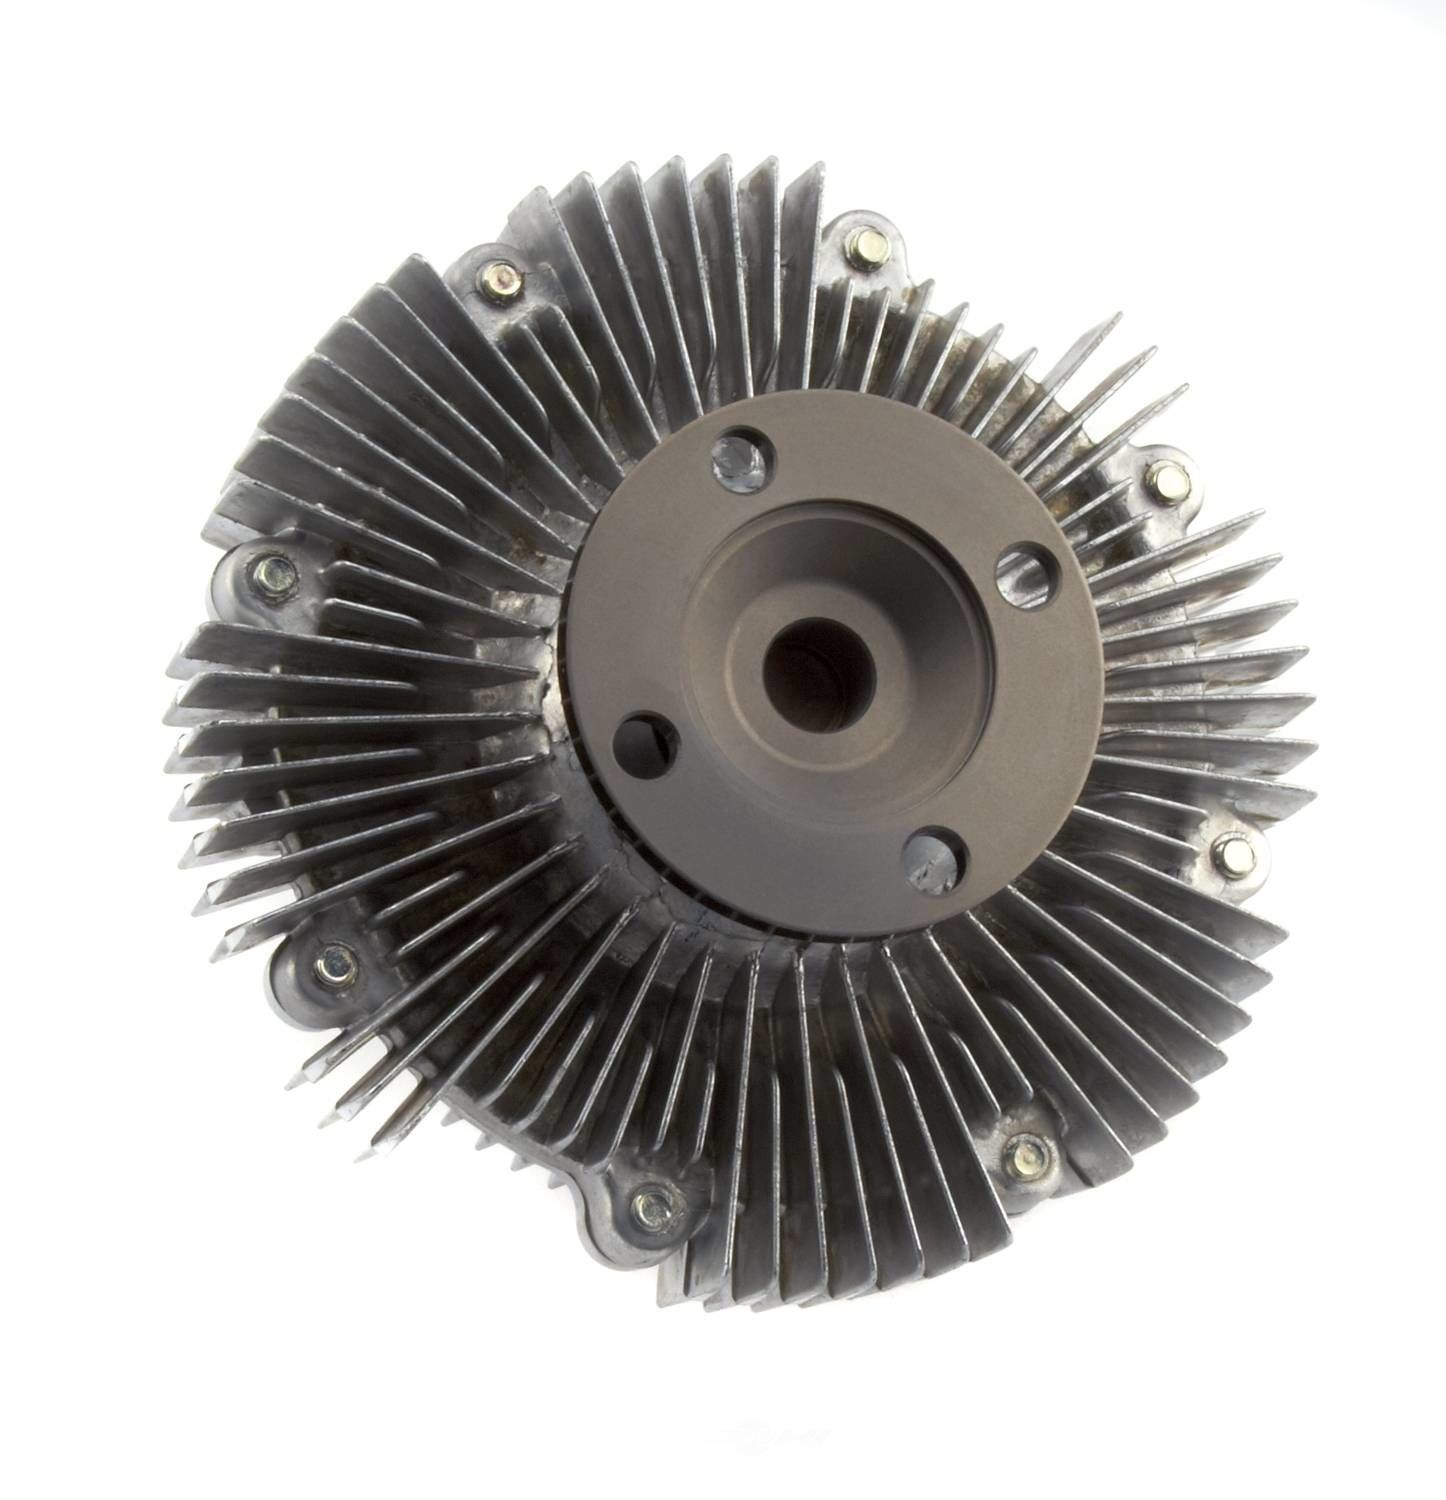 AISIN WORLD CORP. OF AMERICA - Engine Cooling Fan Clutch - AIS FCT-002